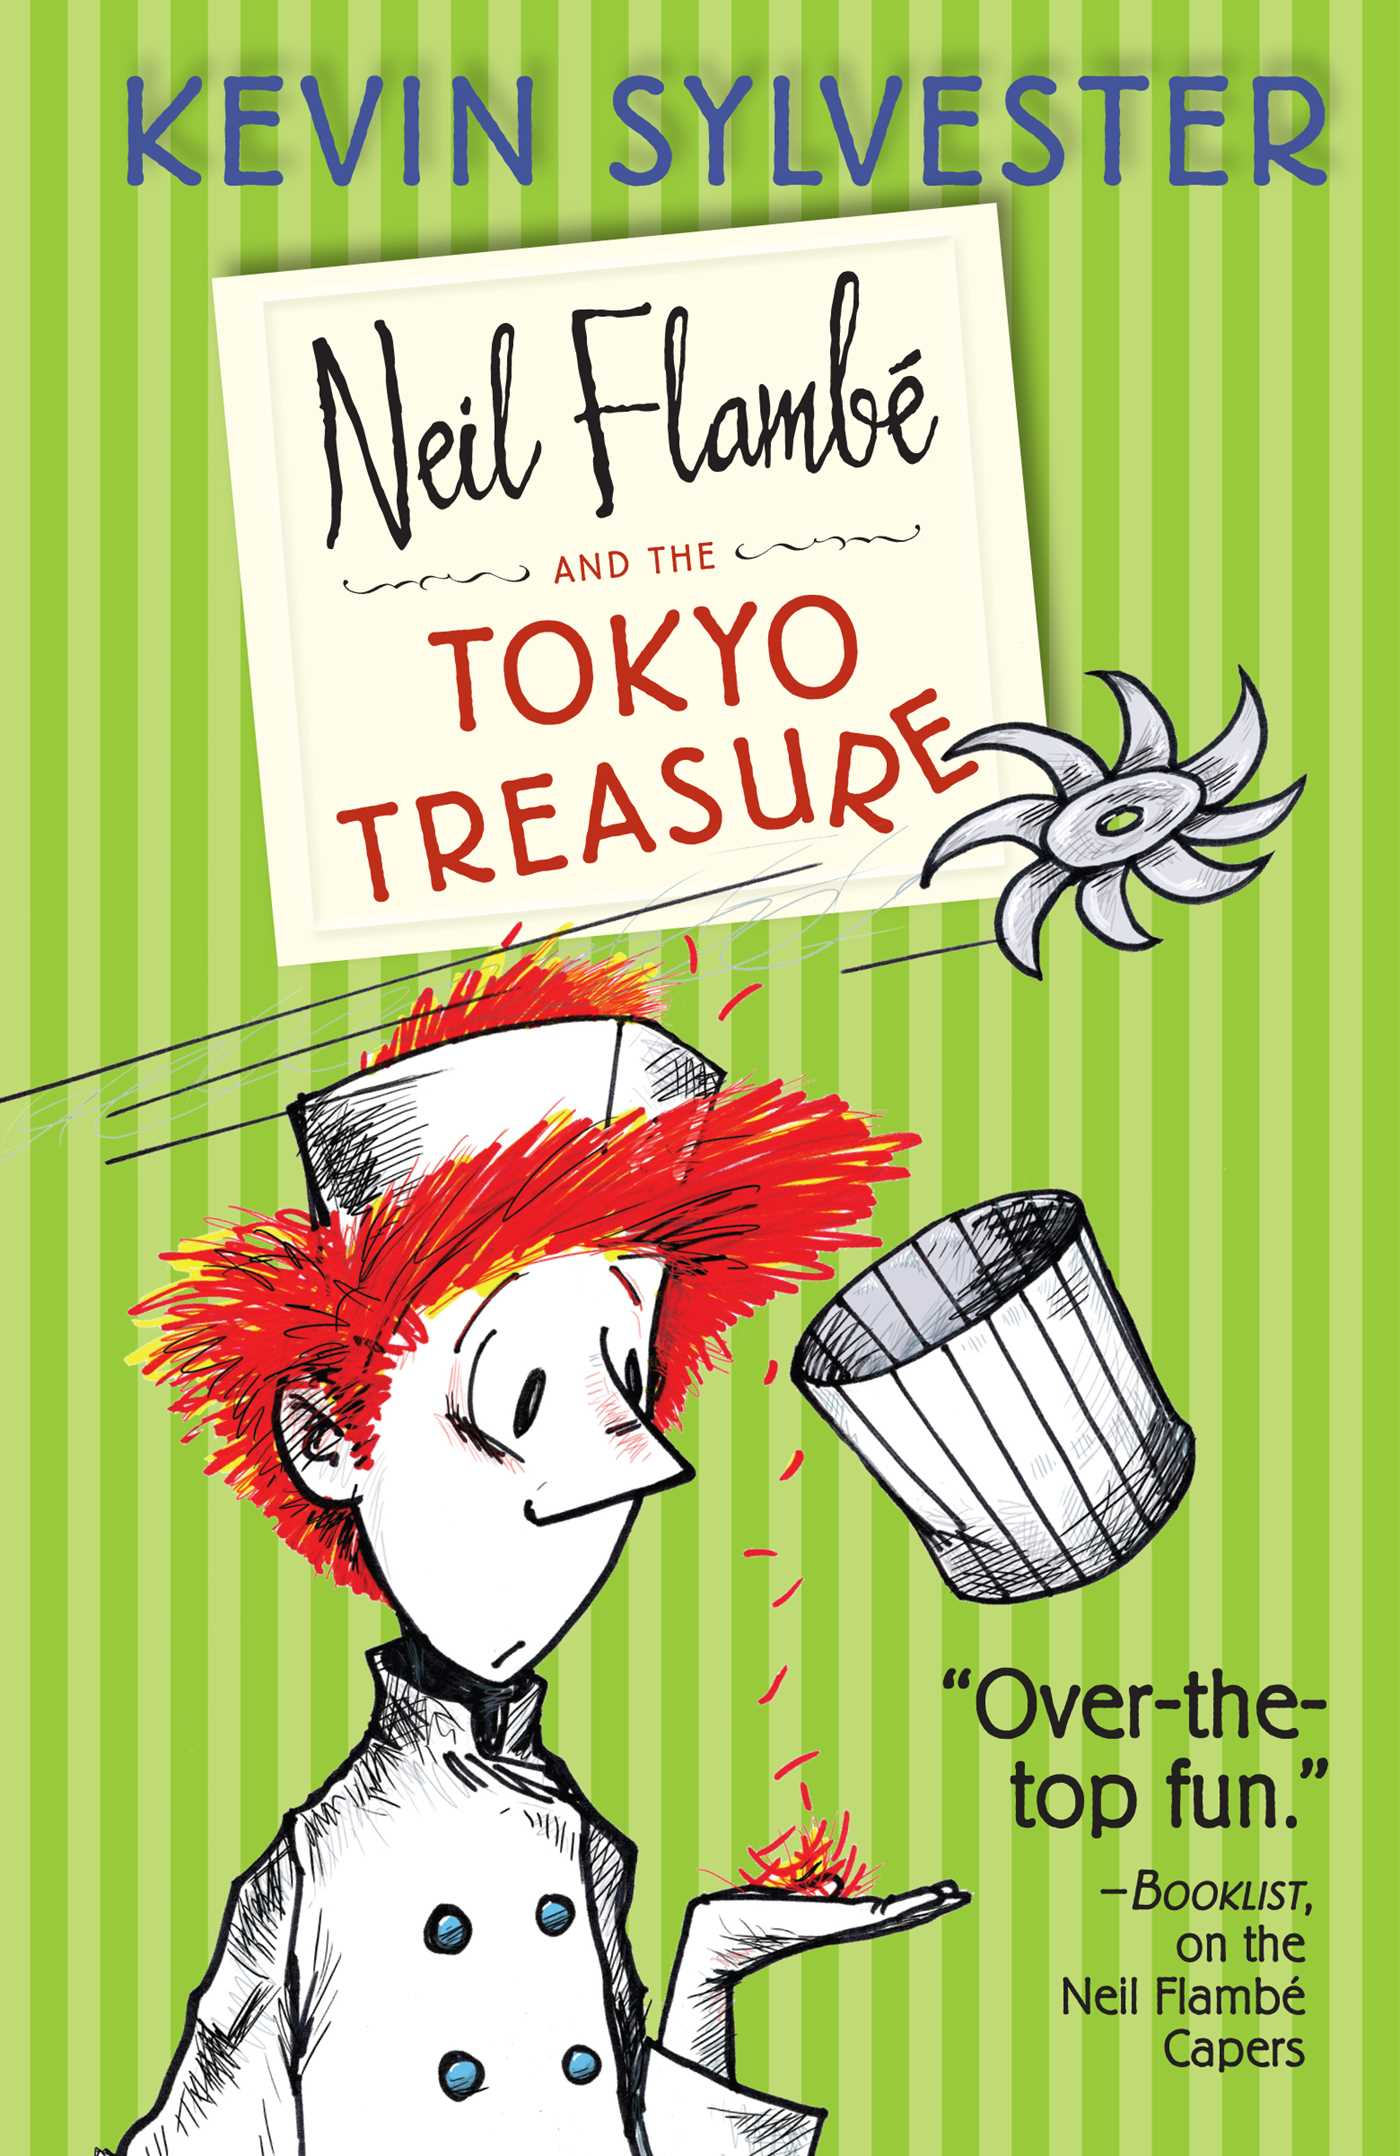 Neil-flambe-and-the-tokyo-treasure-9781442442986_hr